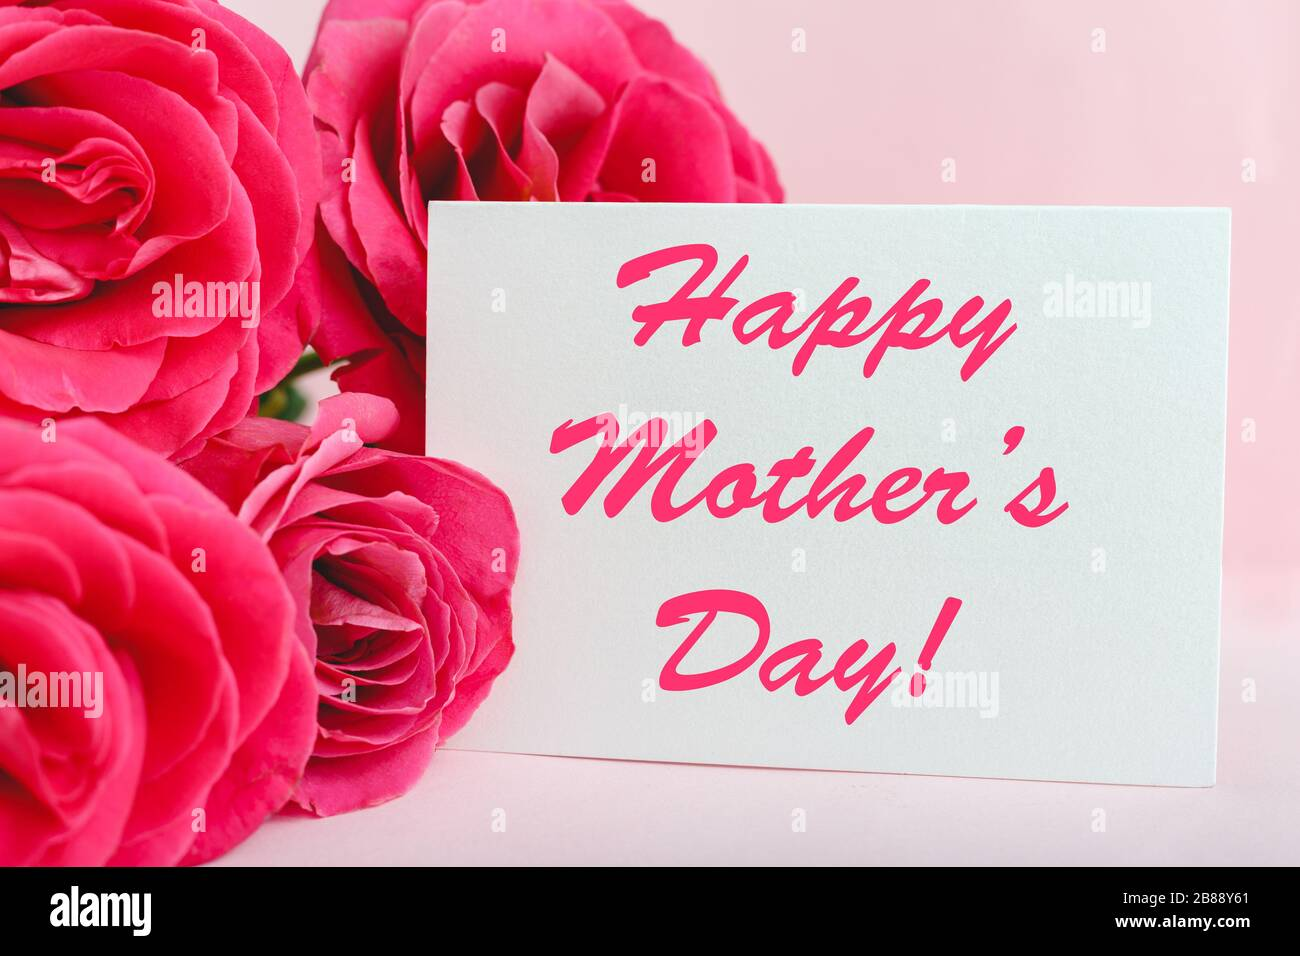 Happy Mothers Day Text On Gift Card In Flower Bouquet Of Pink Roses On Pink Background Greeting Card For Mom Flower Delivery Congratulations Card Stock Photo Alamy